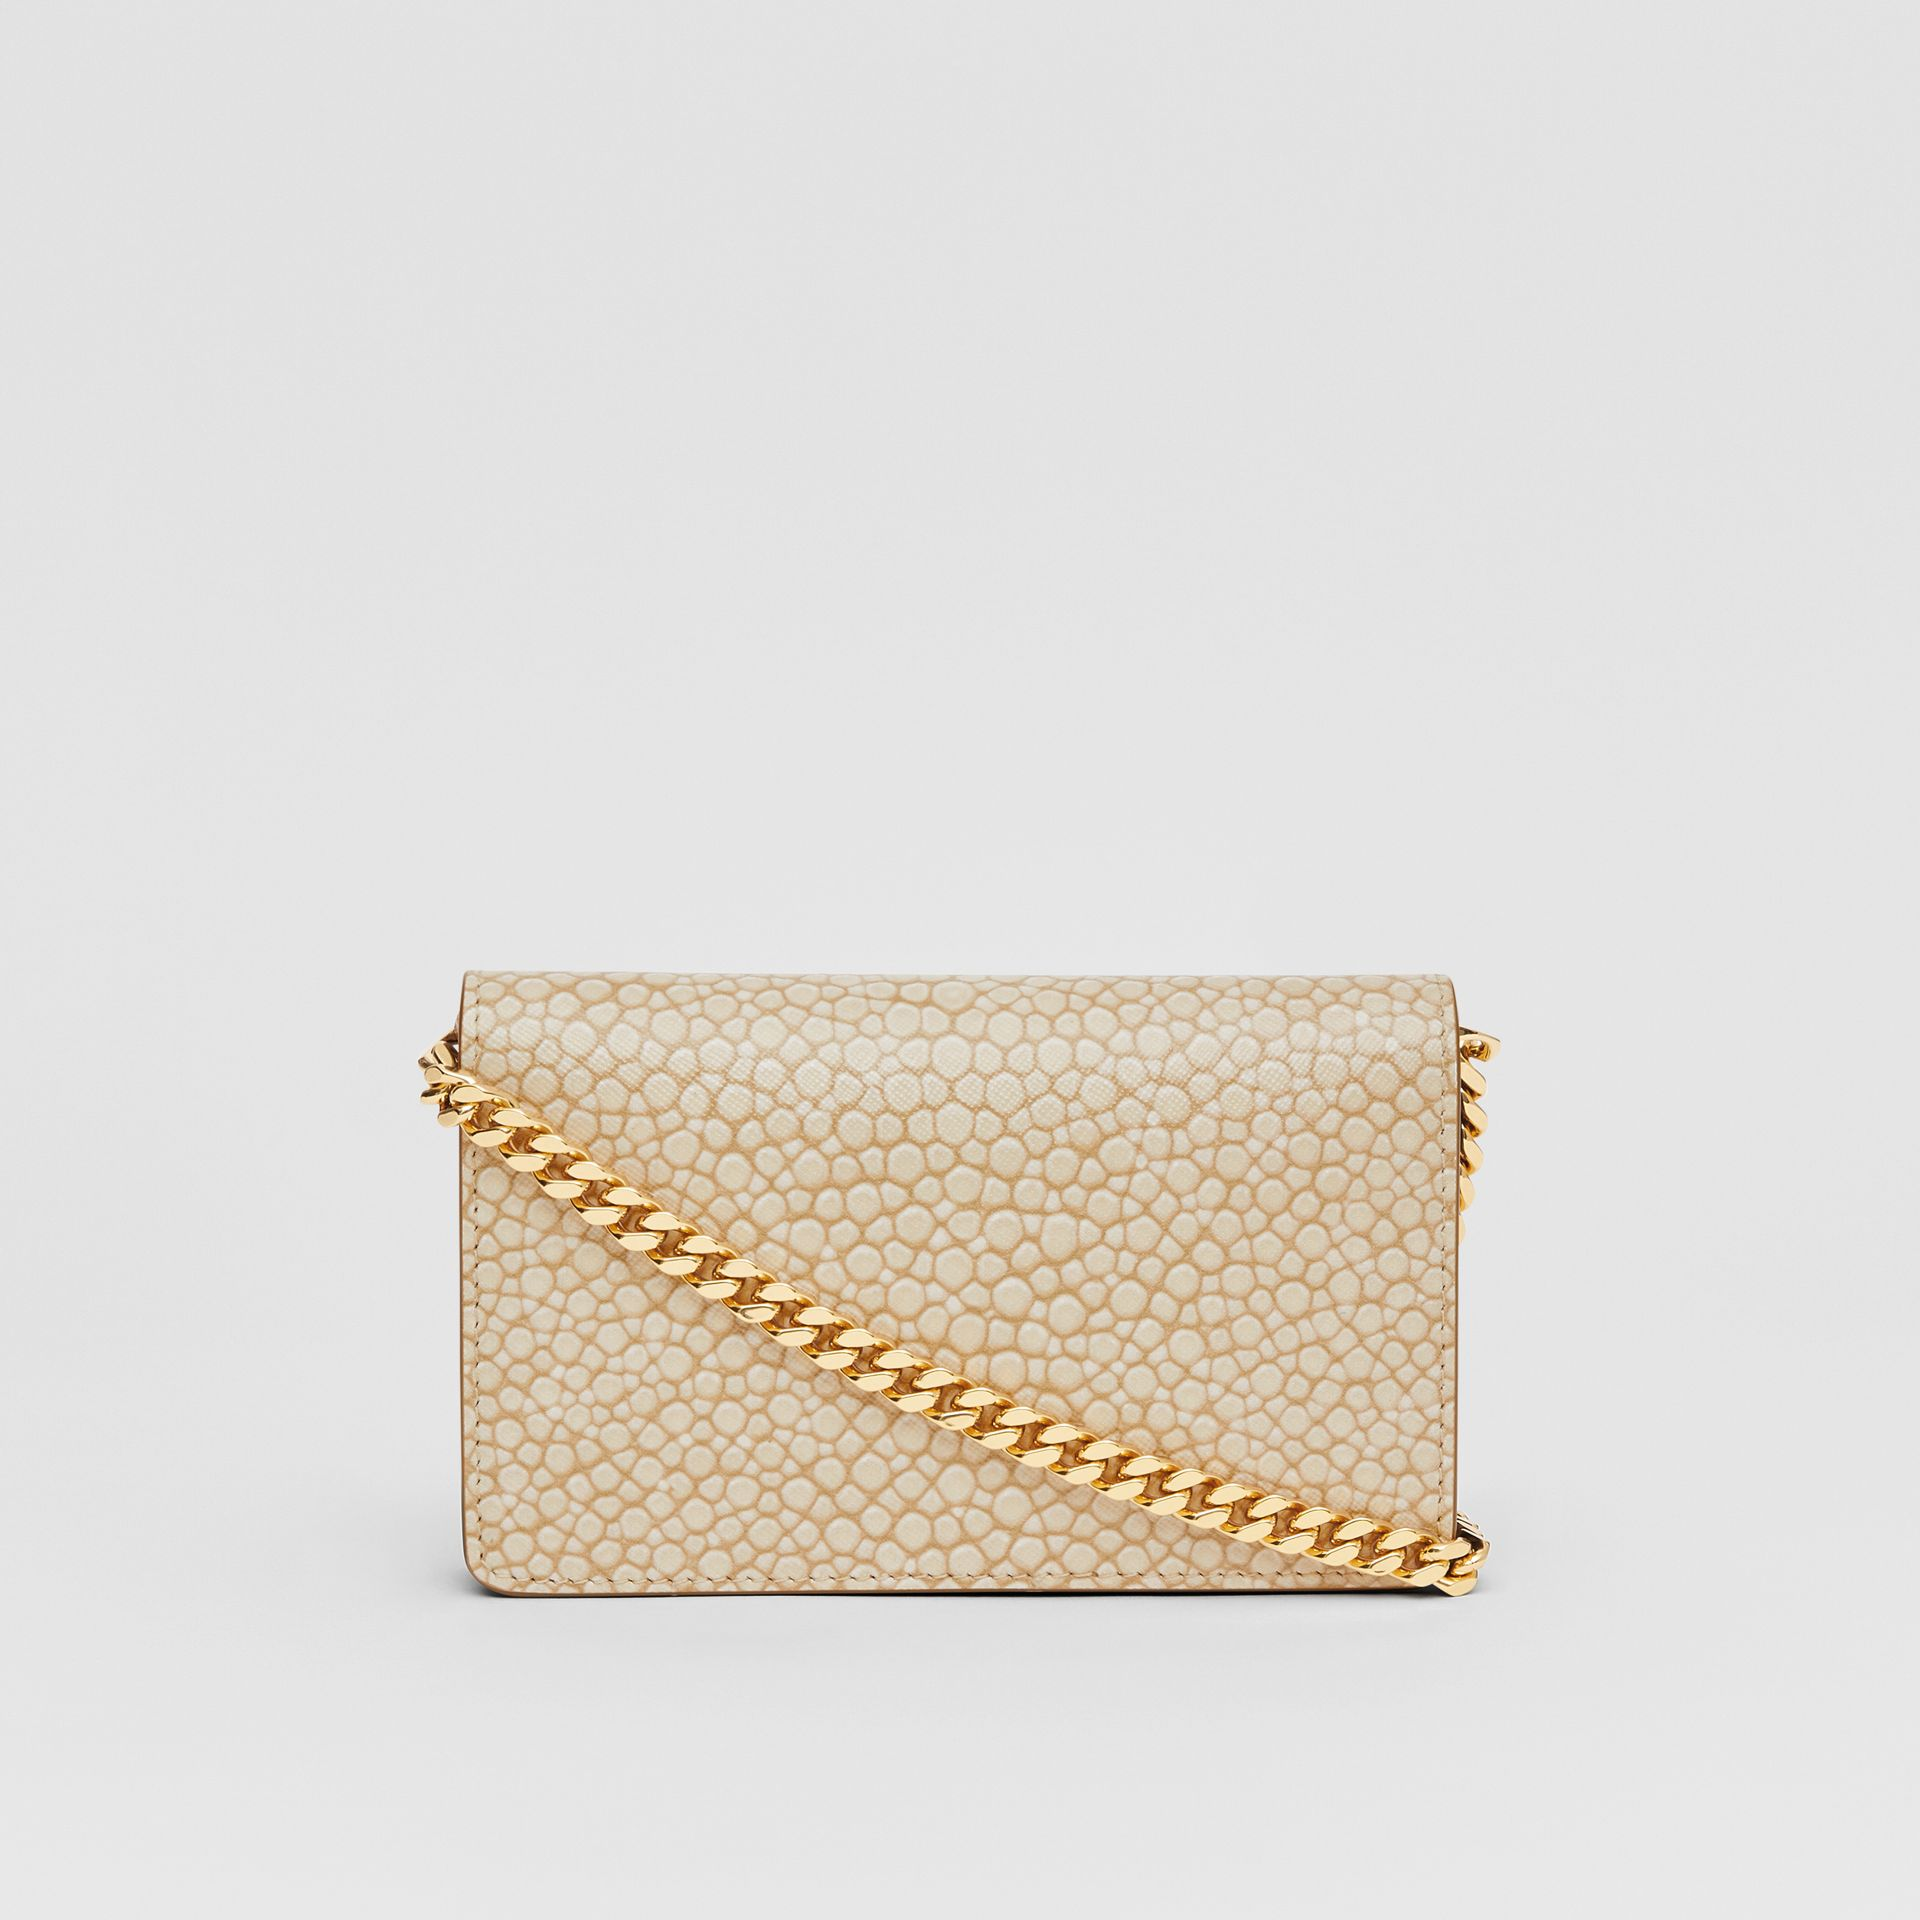 Mini Fish-scale Print Leather Shoulder Bag in Light Sand - Women | Burberry - gallery image 7